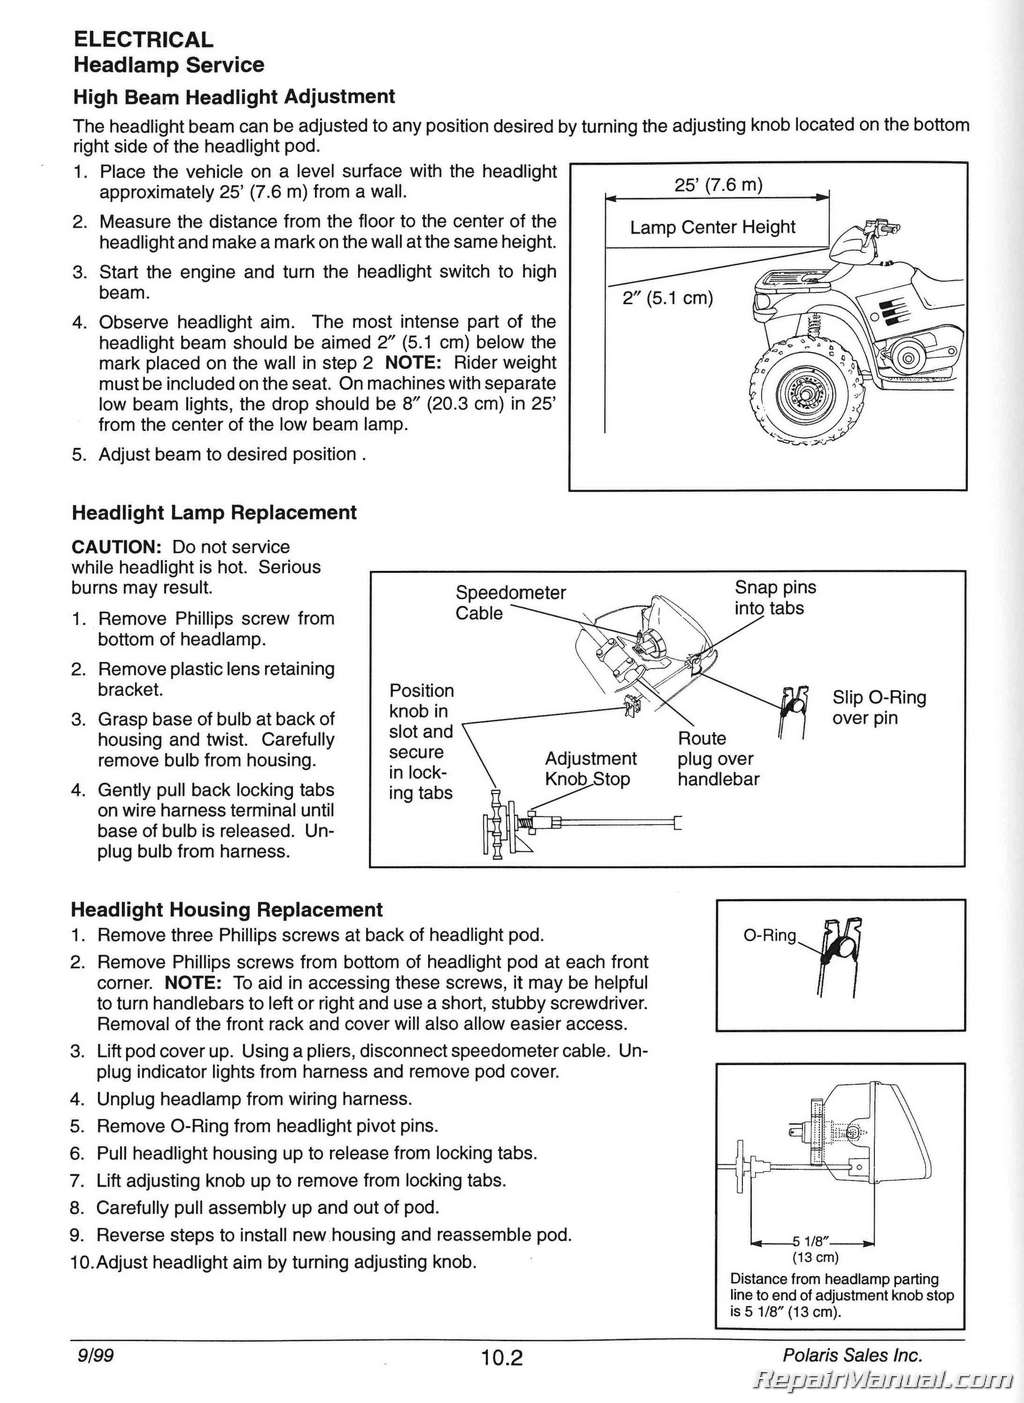 1996 Polaris Atv Wiring Diagram Trusted Magnum 425 4x4 Electrical Diagrams 4 Wheeler